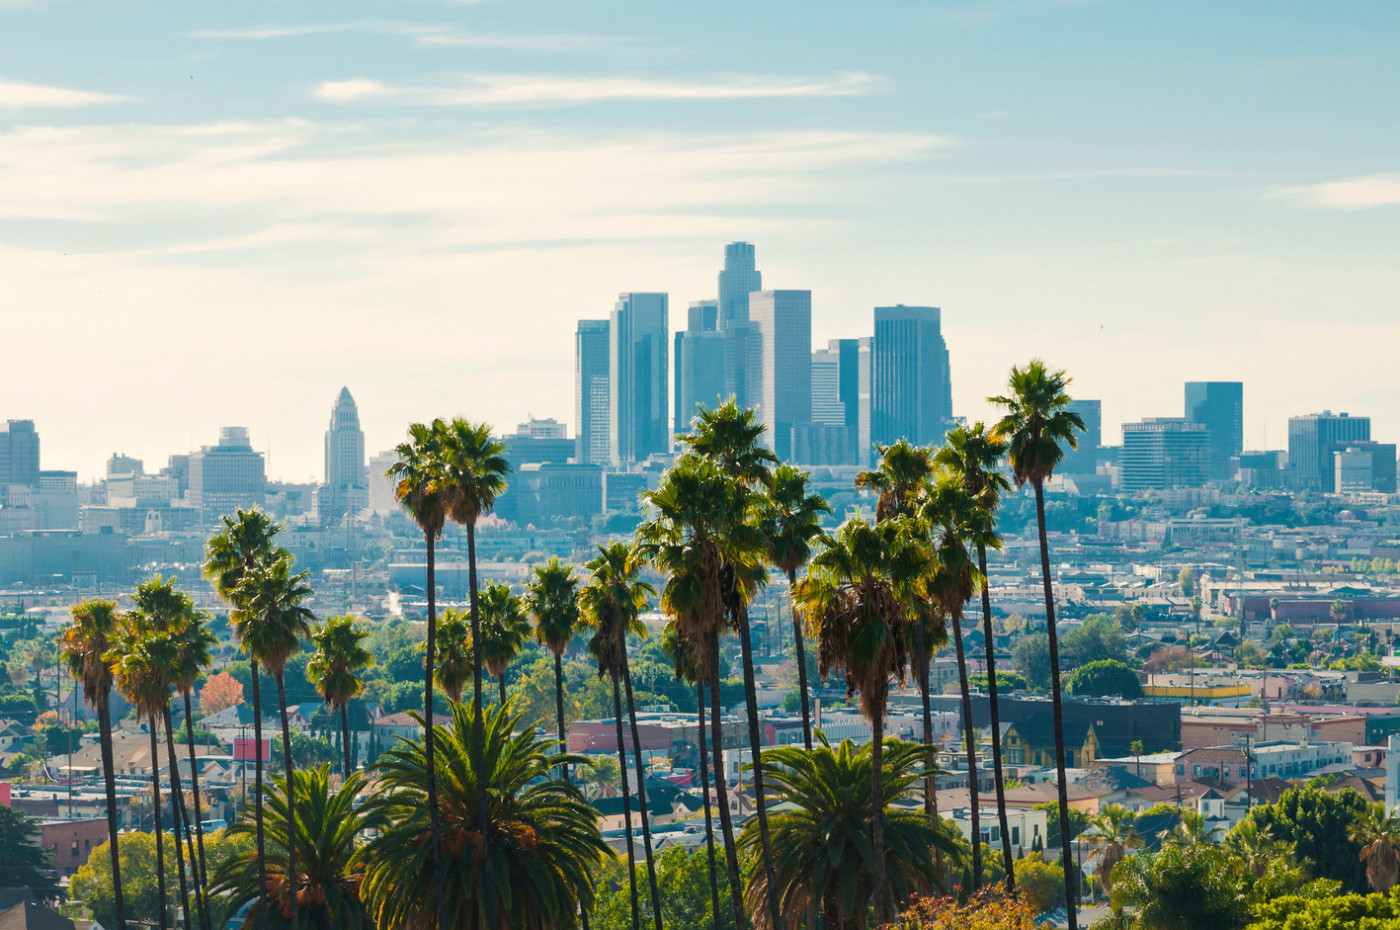 Skyline with iconic palm trees